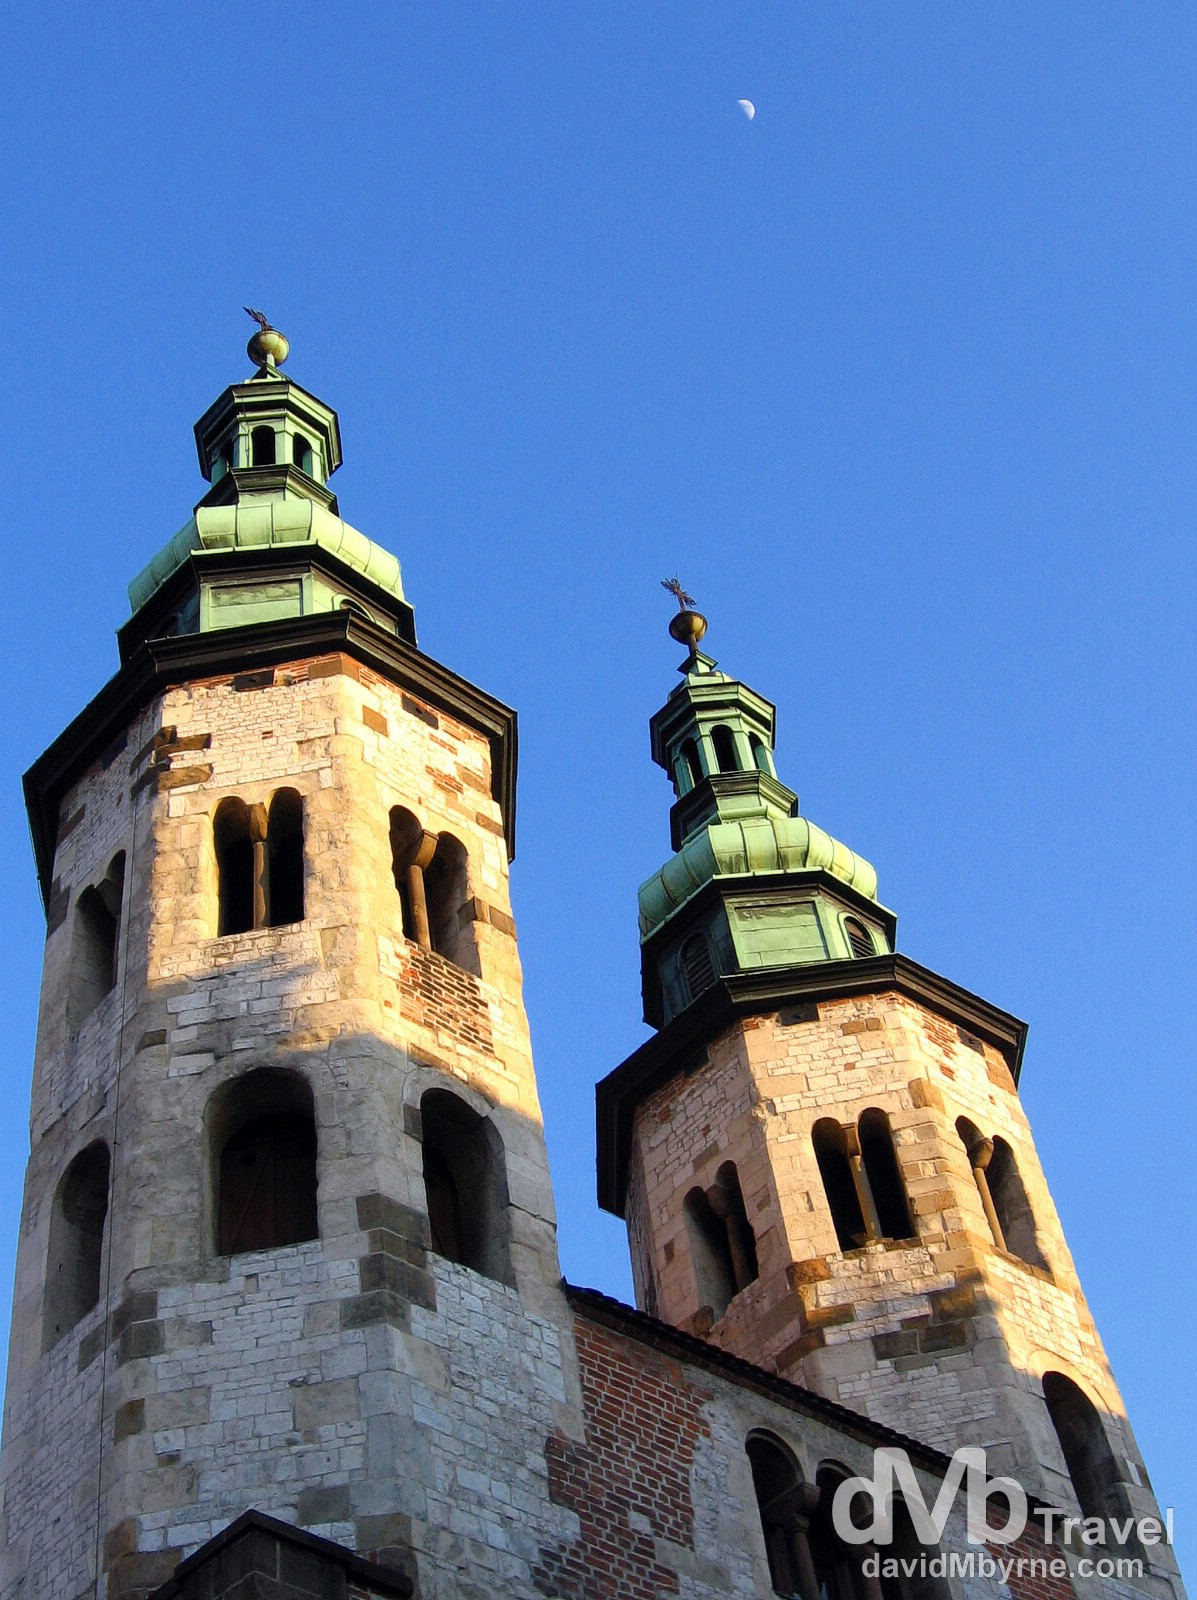 The twin towers of Saint Andrew's Church, one of the oldest buildings in the Old Town of Krakow, Poland. March 6th 2006.